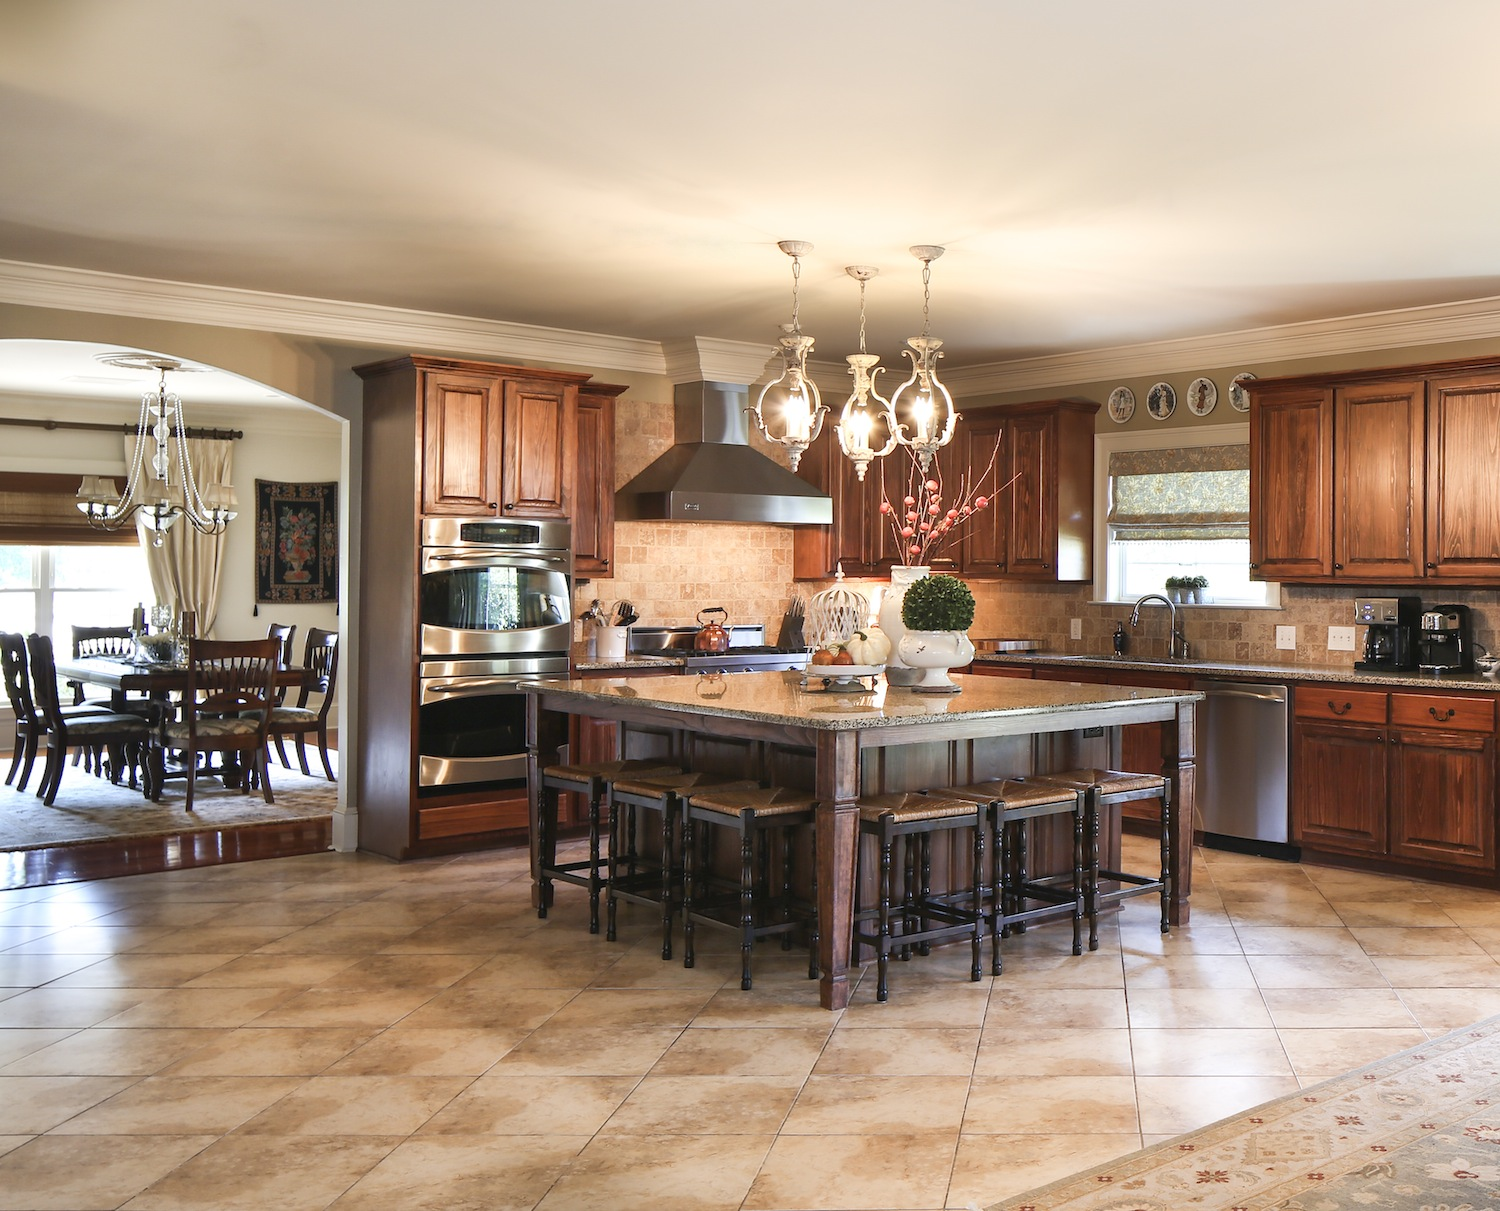 Family jewel inregister for Large family kitchen